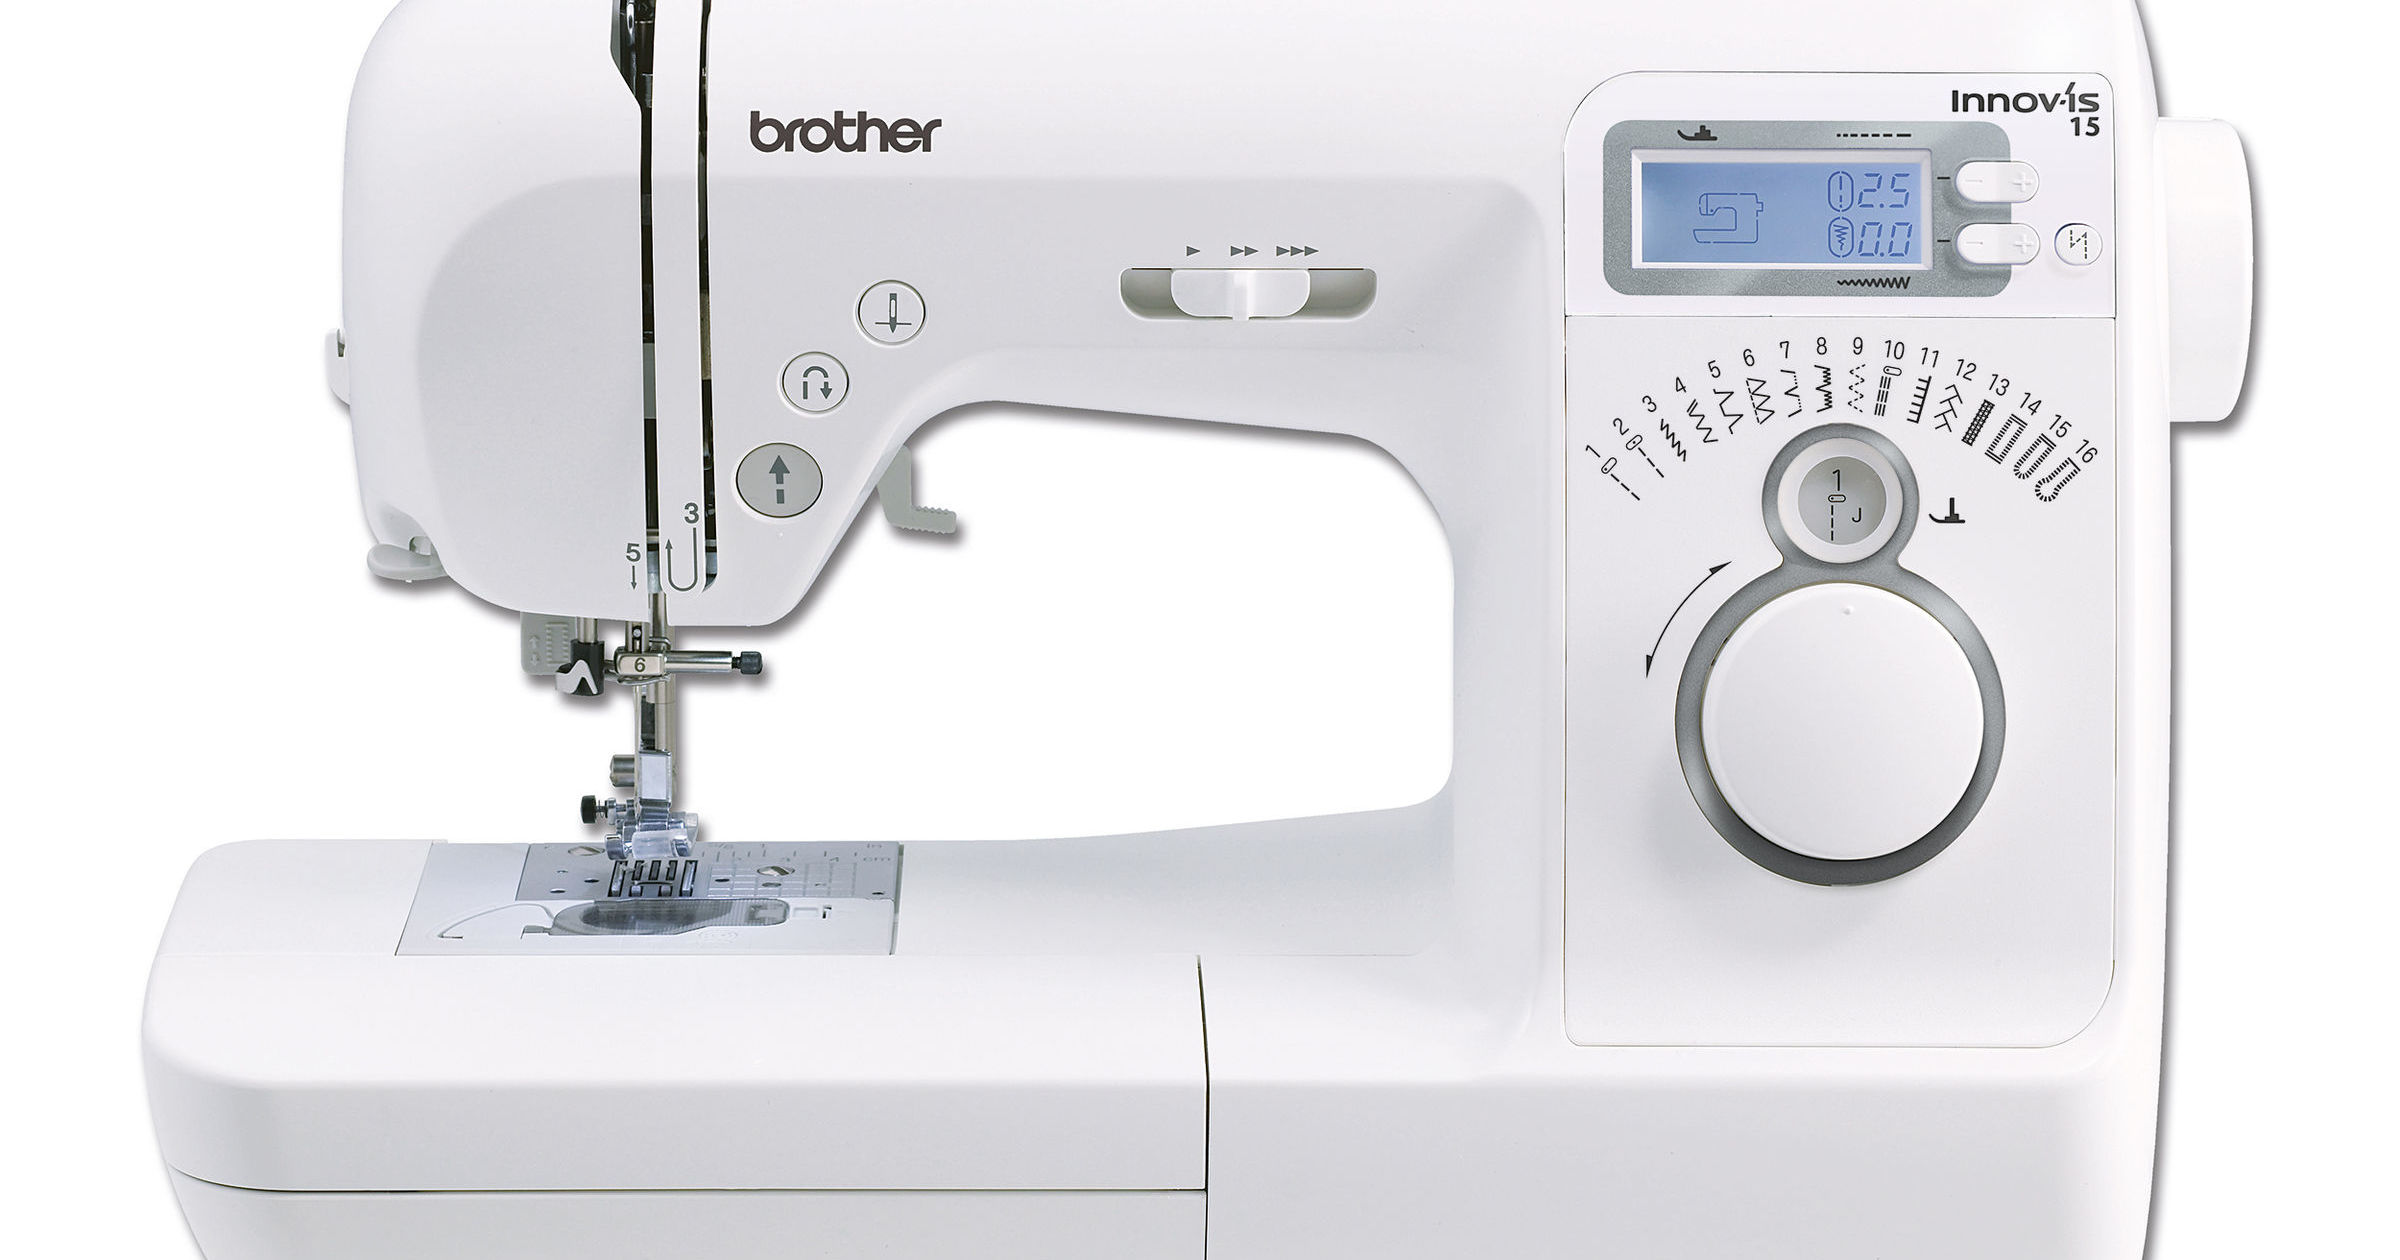 Brother Innov Is 15 Sewing Machine